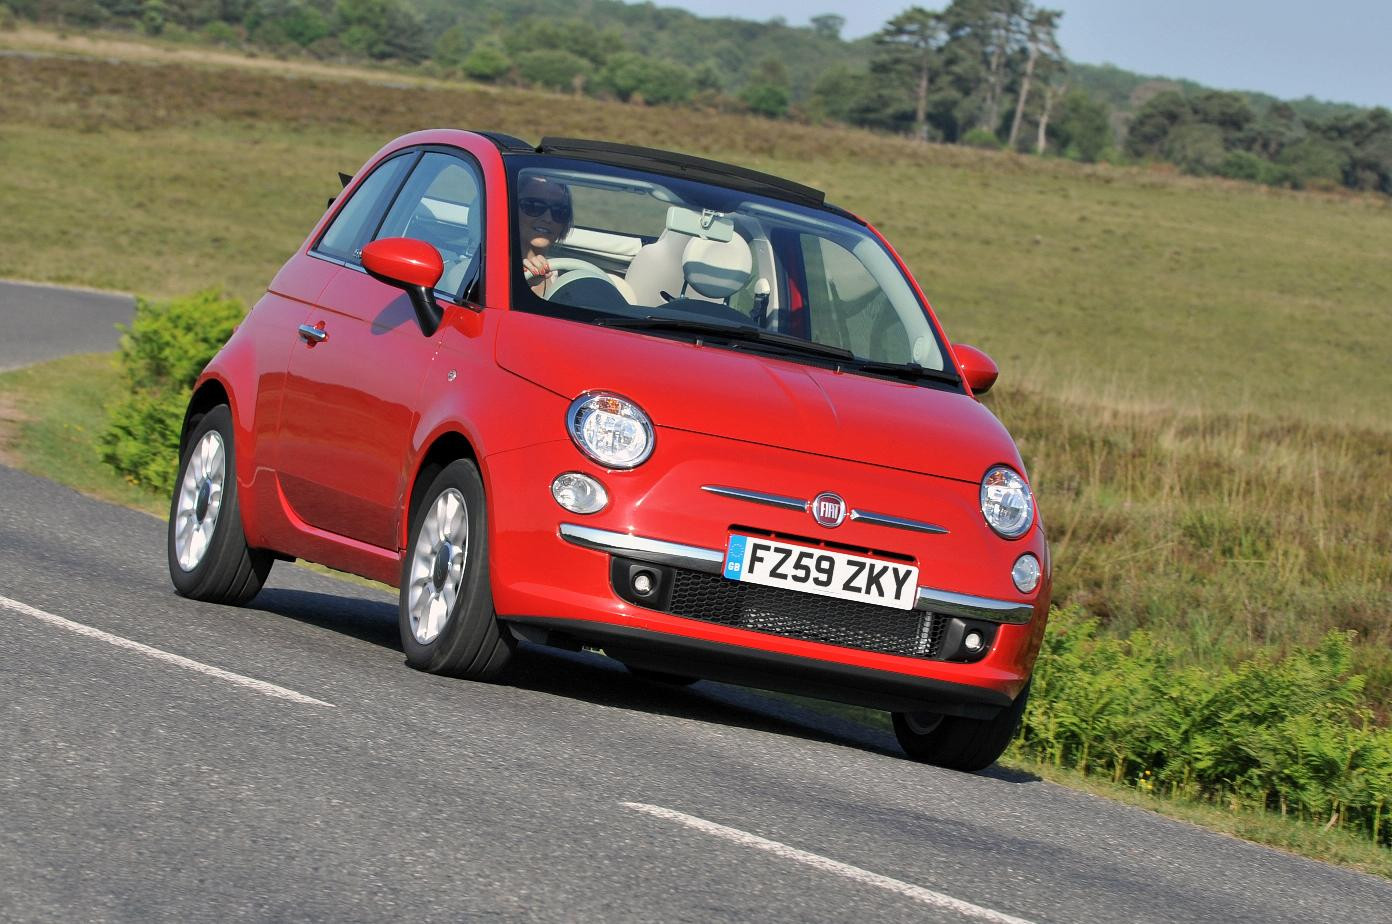 Red Fiat 500C driving towards you